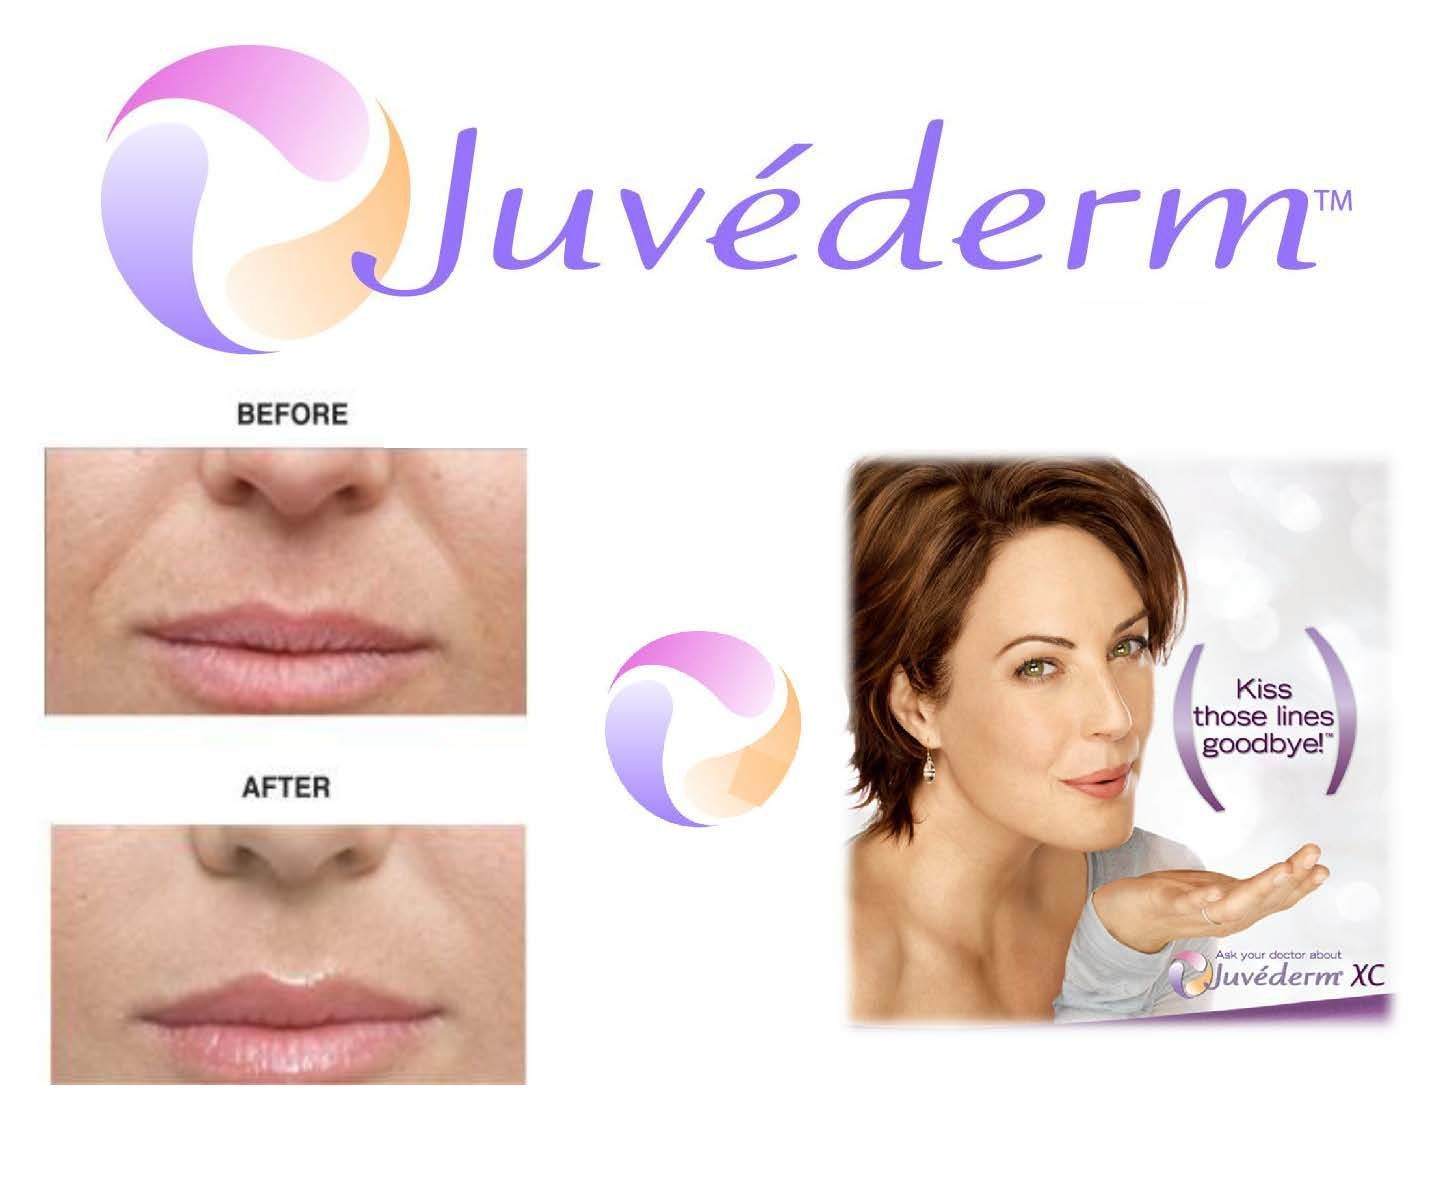 Cincinnati - Juvederm Ultra Plus XC Cincinnati Juvederm is one of the best fillers in the industry. Look at the before and after results!Juvederm is one of the best fillers in the industry. Look at the before and after results!